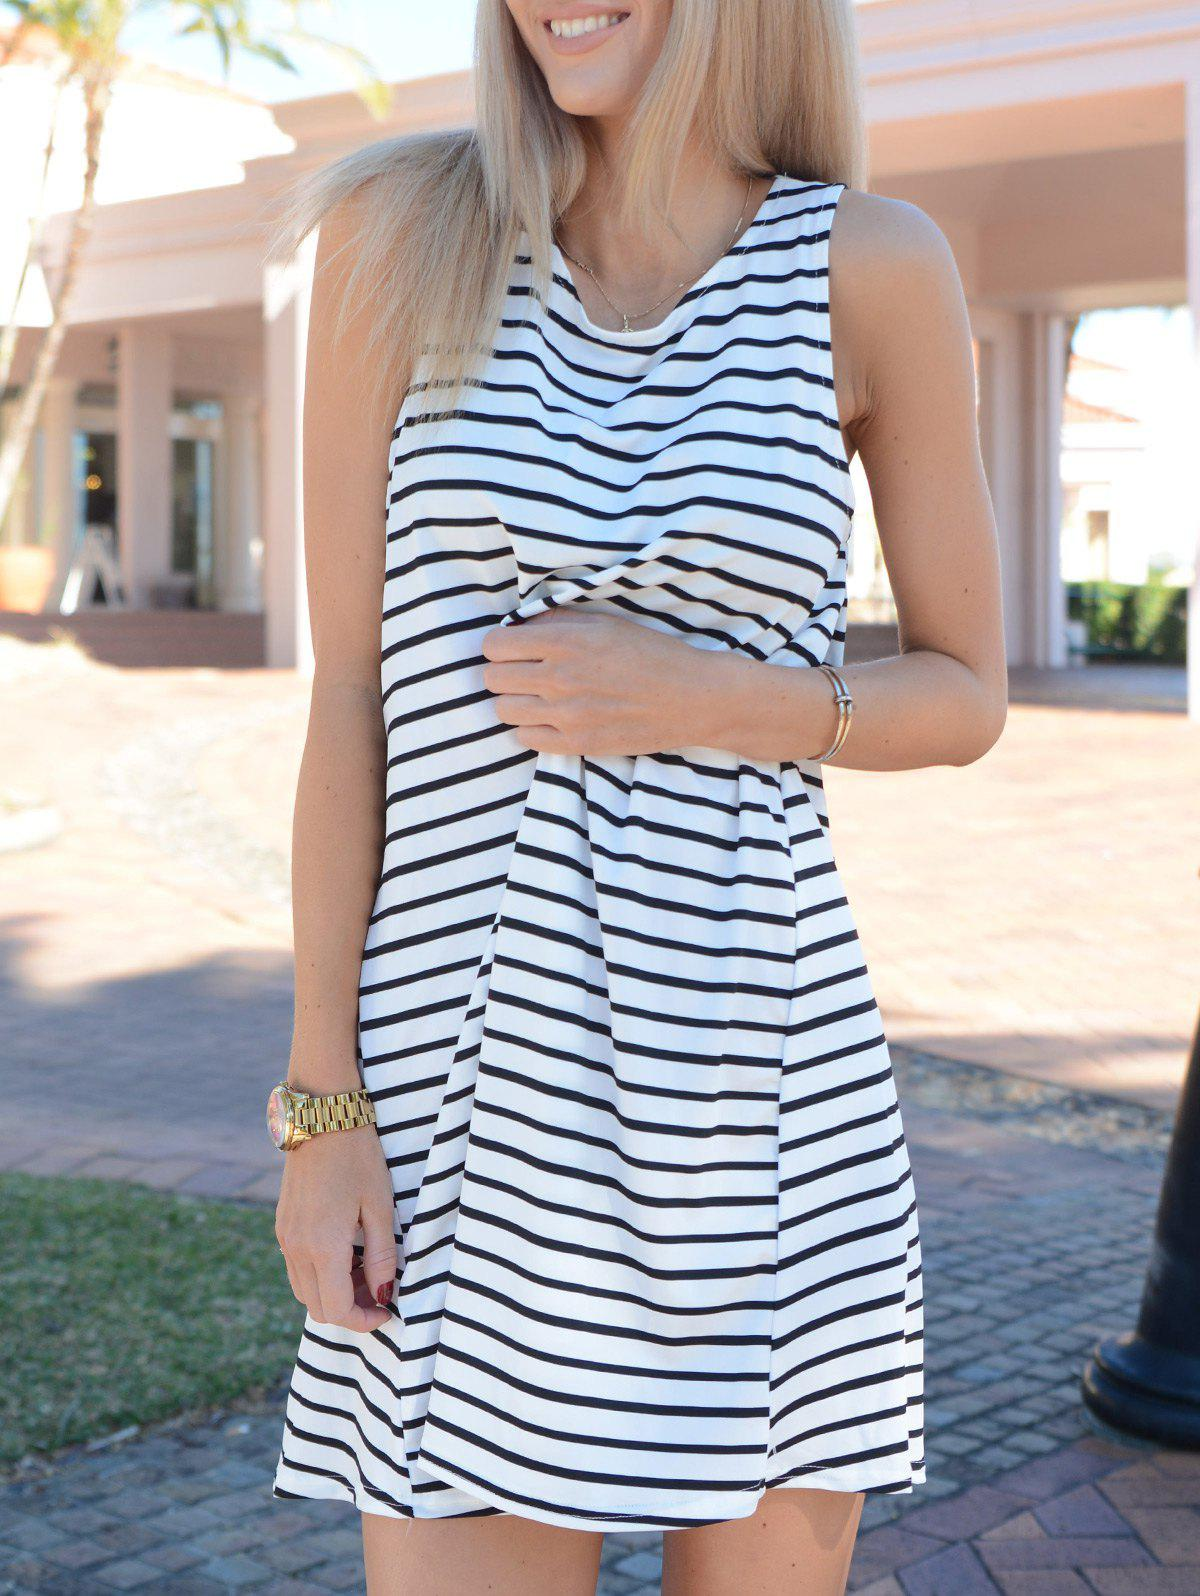 Tunic White Black Sleeveless Striped Dress 129903102